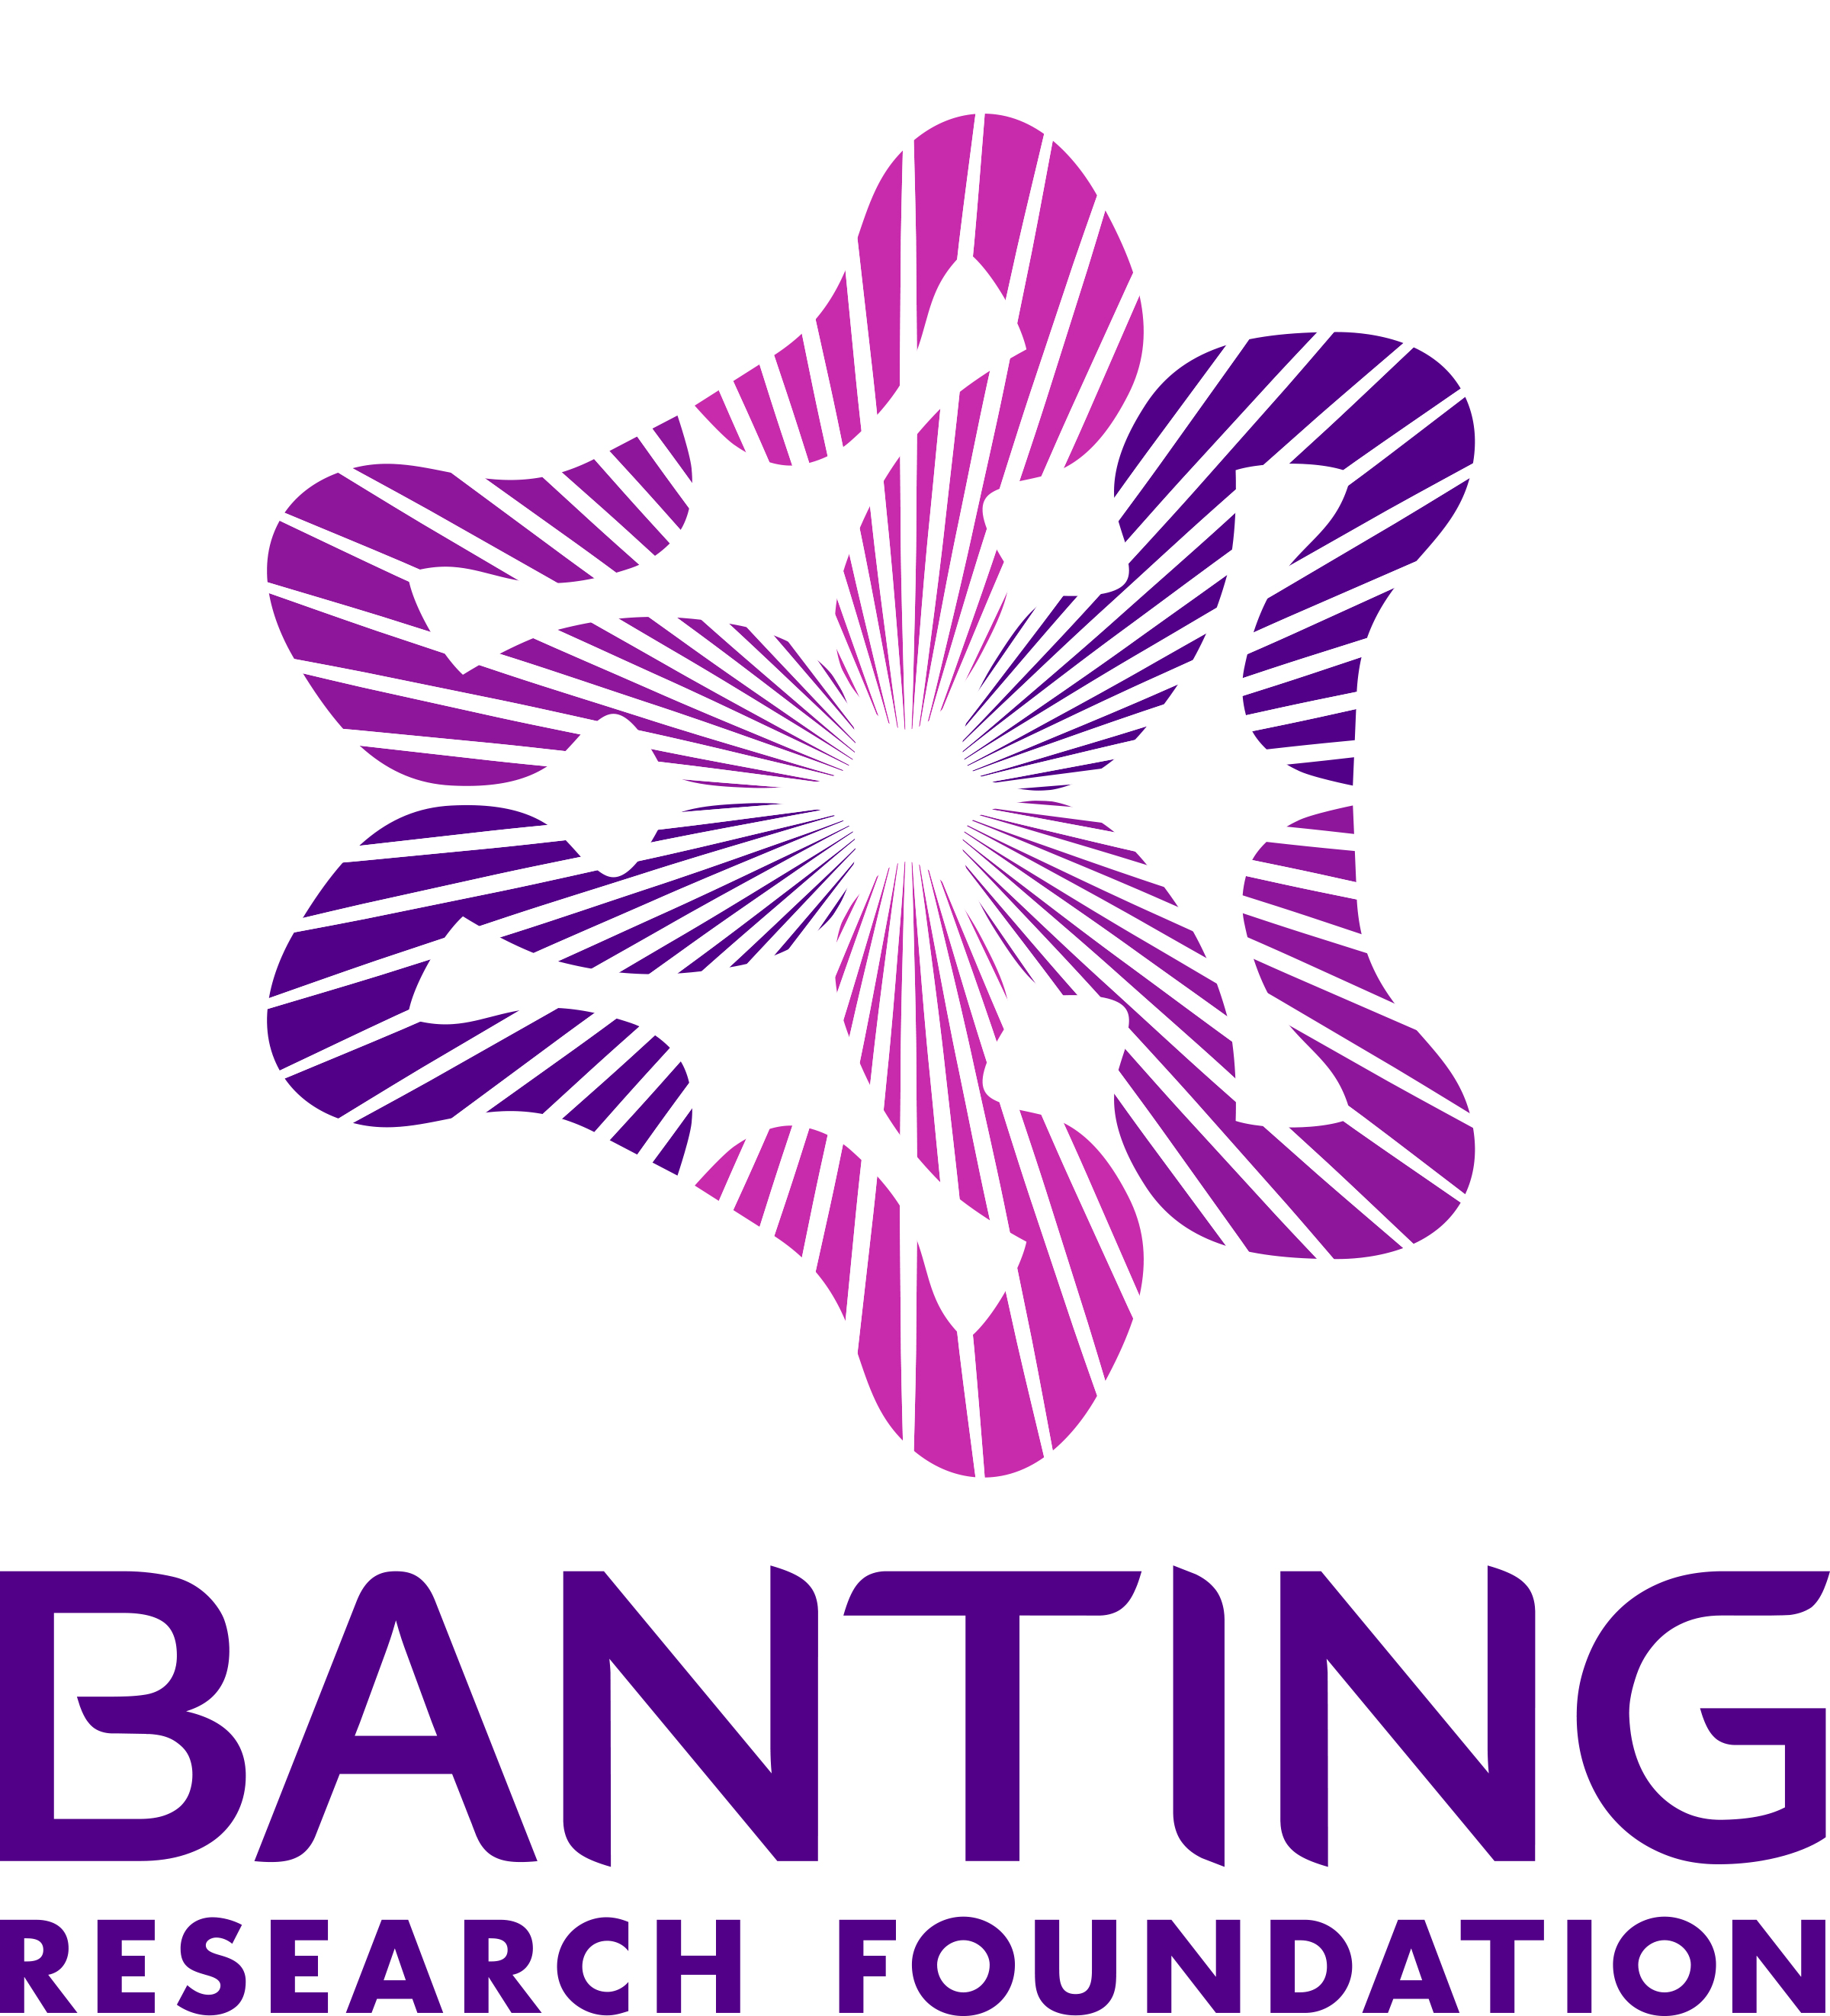 The Banting Research Foundation (BRF)